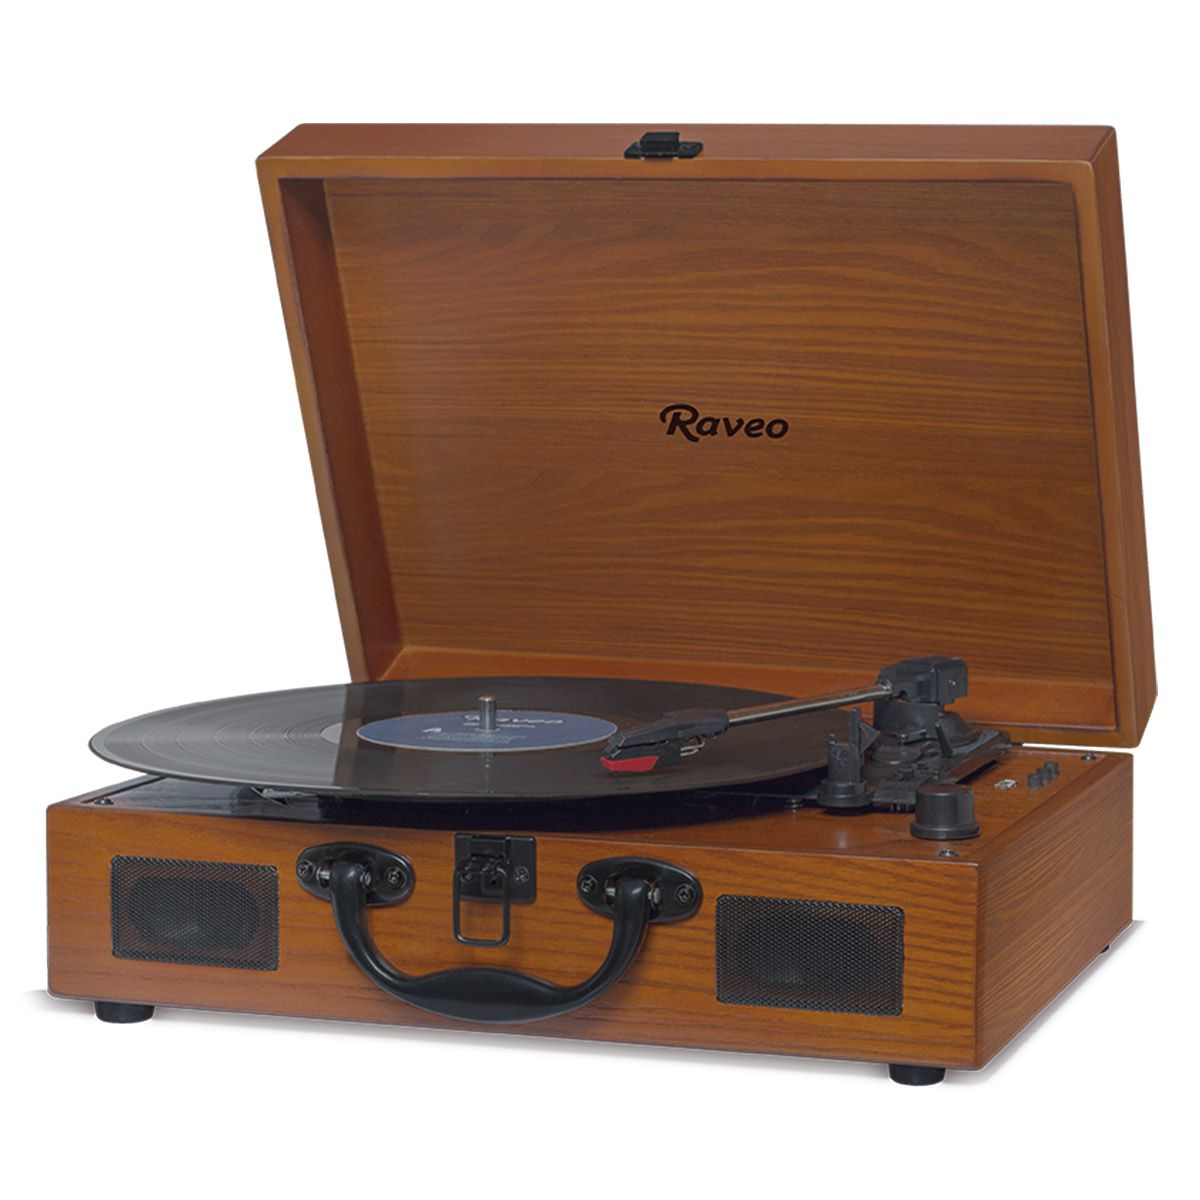 Vitrola Raveo Sonetto Wood c/ Toca Disco, bluetooth, USB Rec Selo Anatel